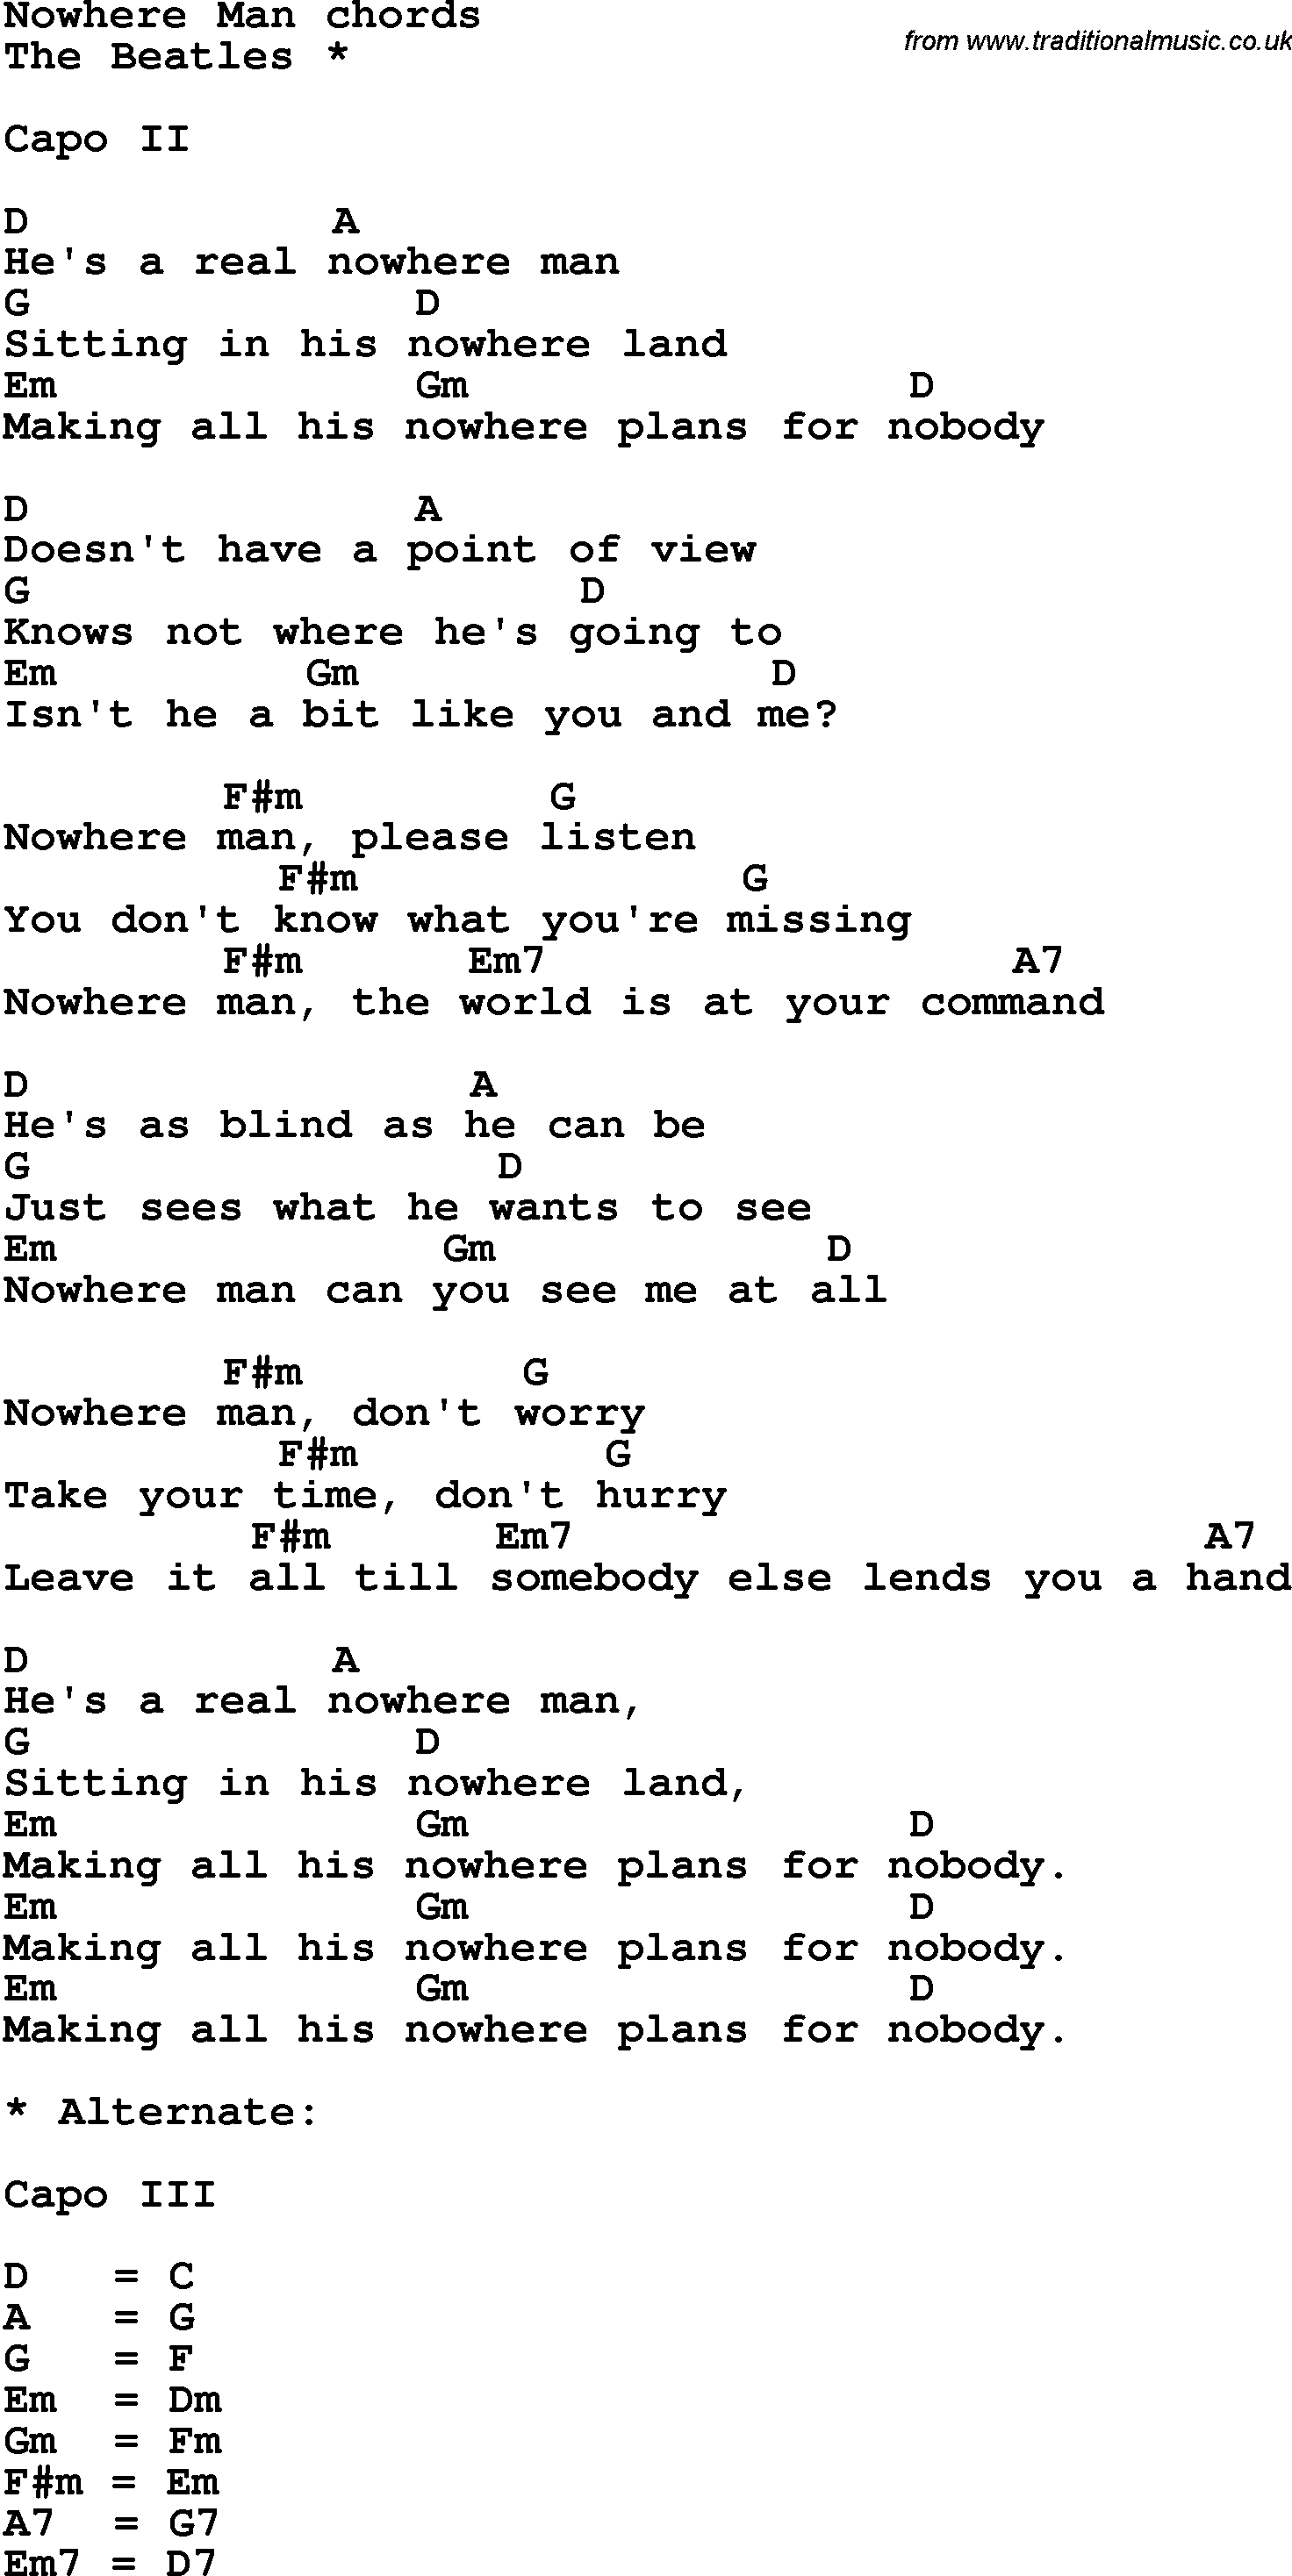 Song lyrics with guitar chords for nowhere man the beatles song lyrics with guitar chords for nowhere man the beatles hexwebz Choice Image